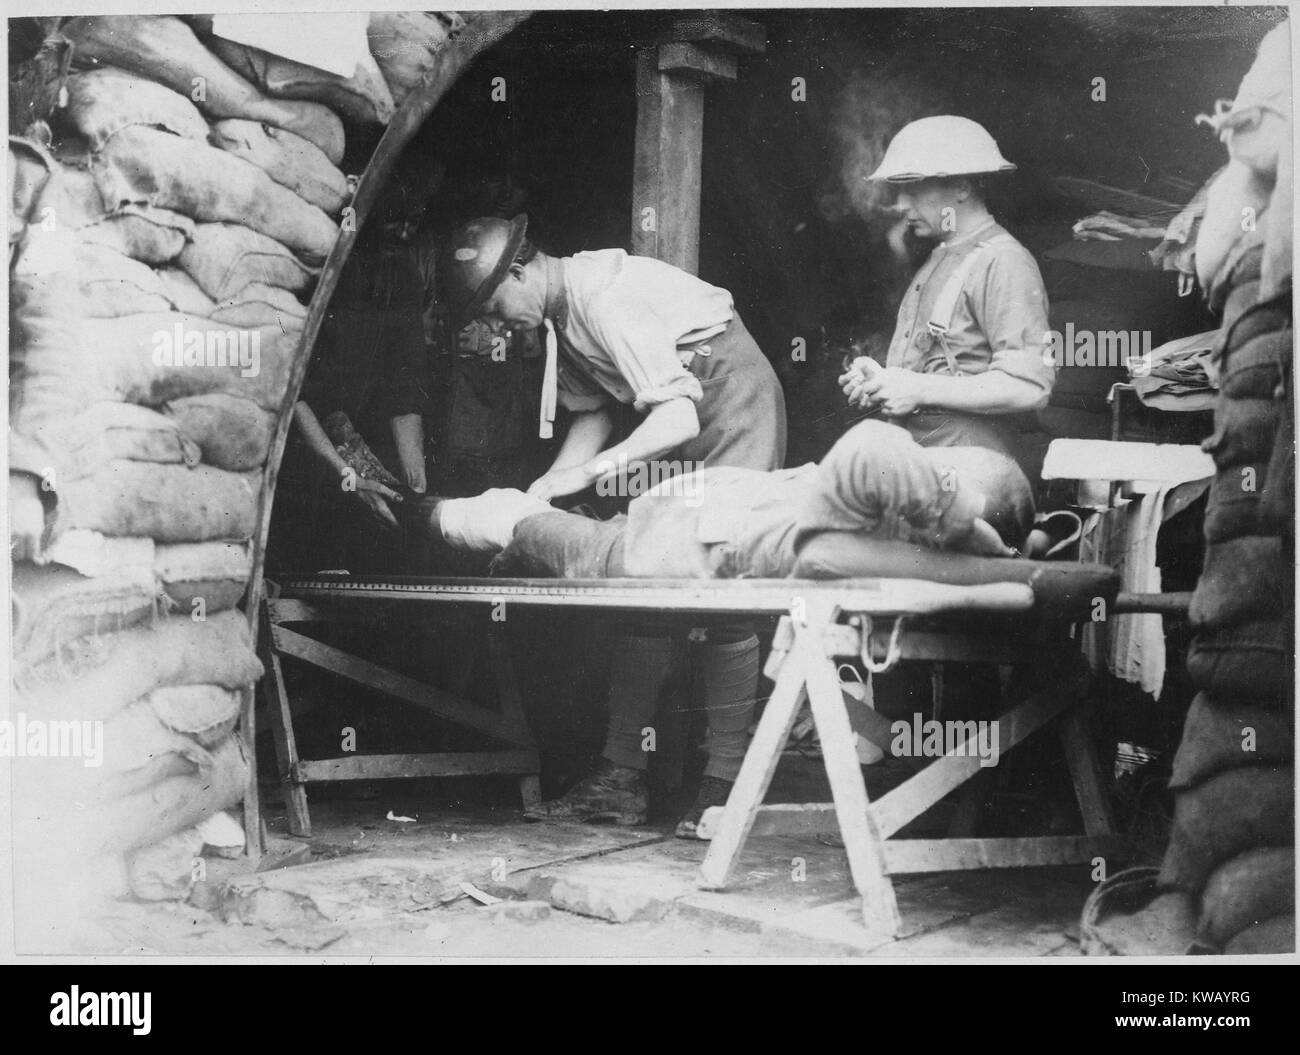 Scottish territorials being examined by two medical staff on a table in a dressing station inside a British bunker - Stock Image